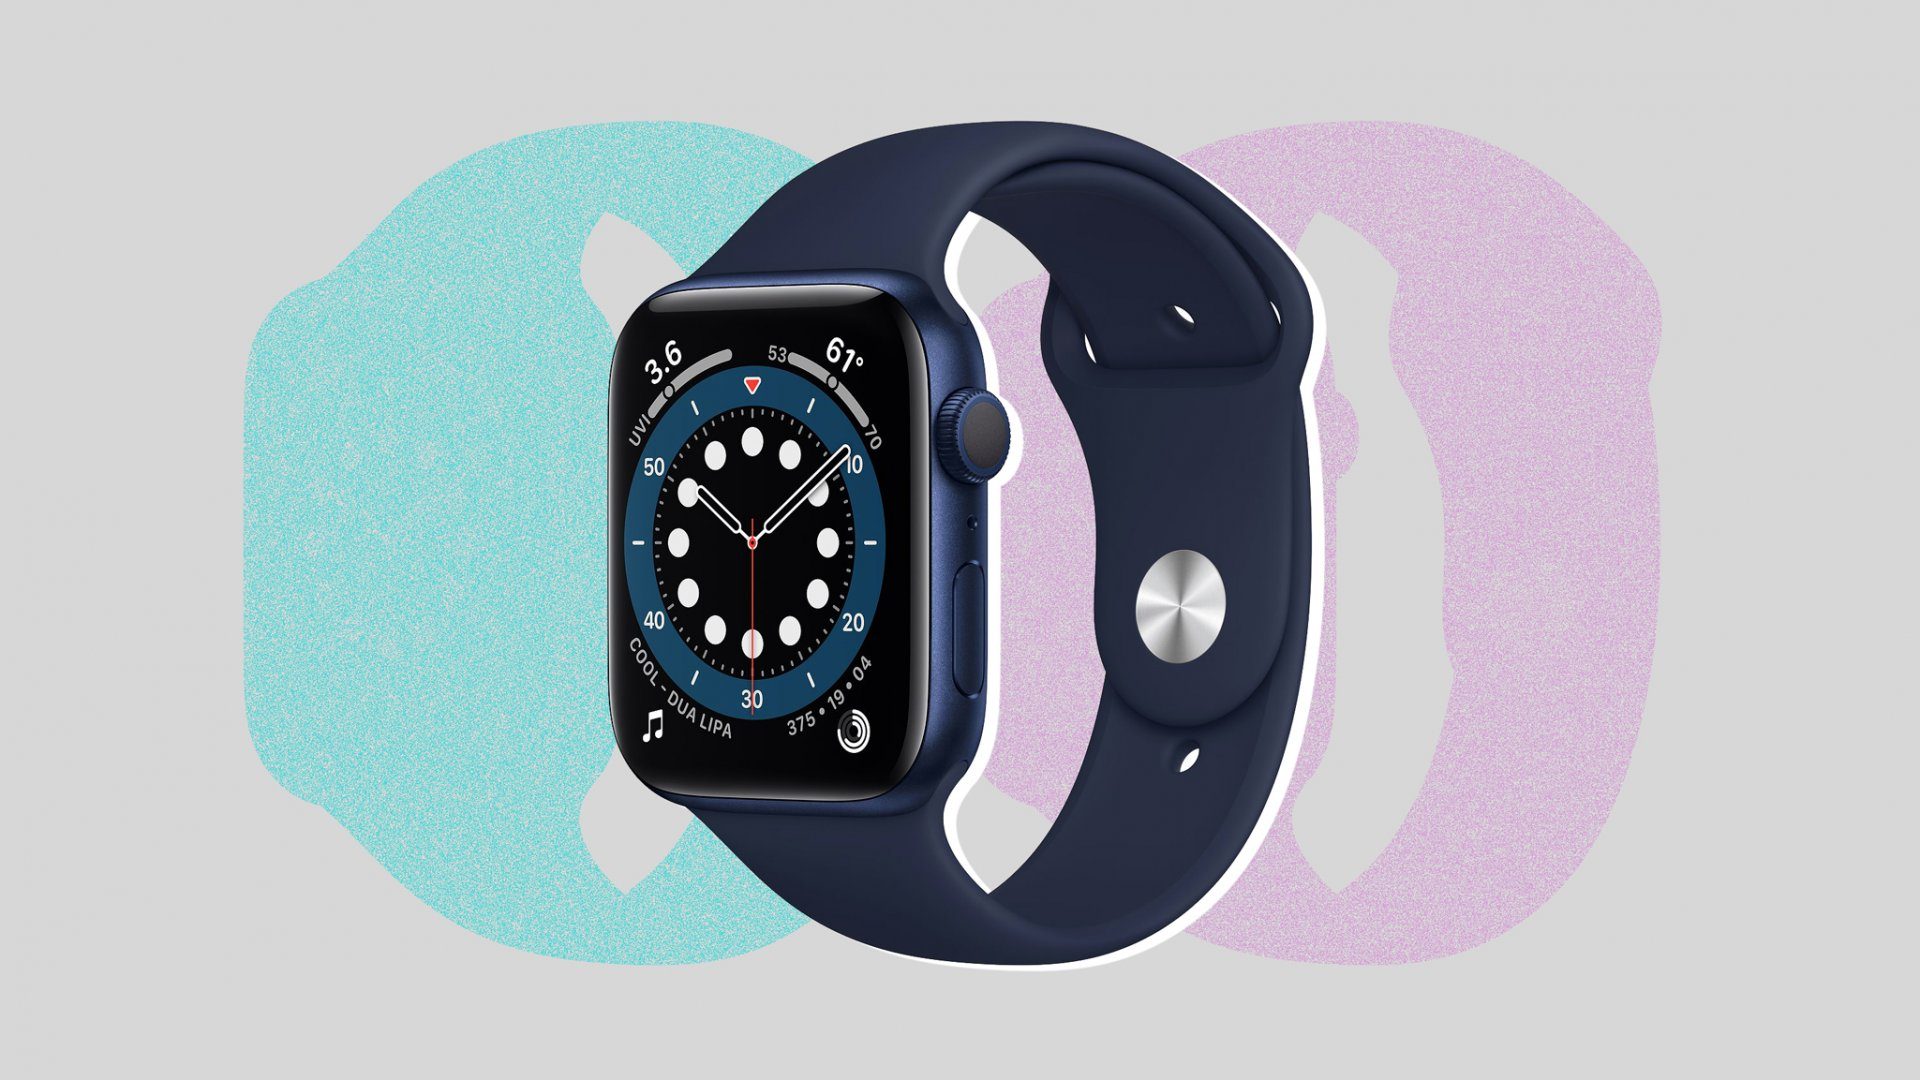 The New Apple Watch 6 May Have a Problem. Oddly Enough, That's OK